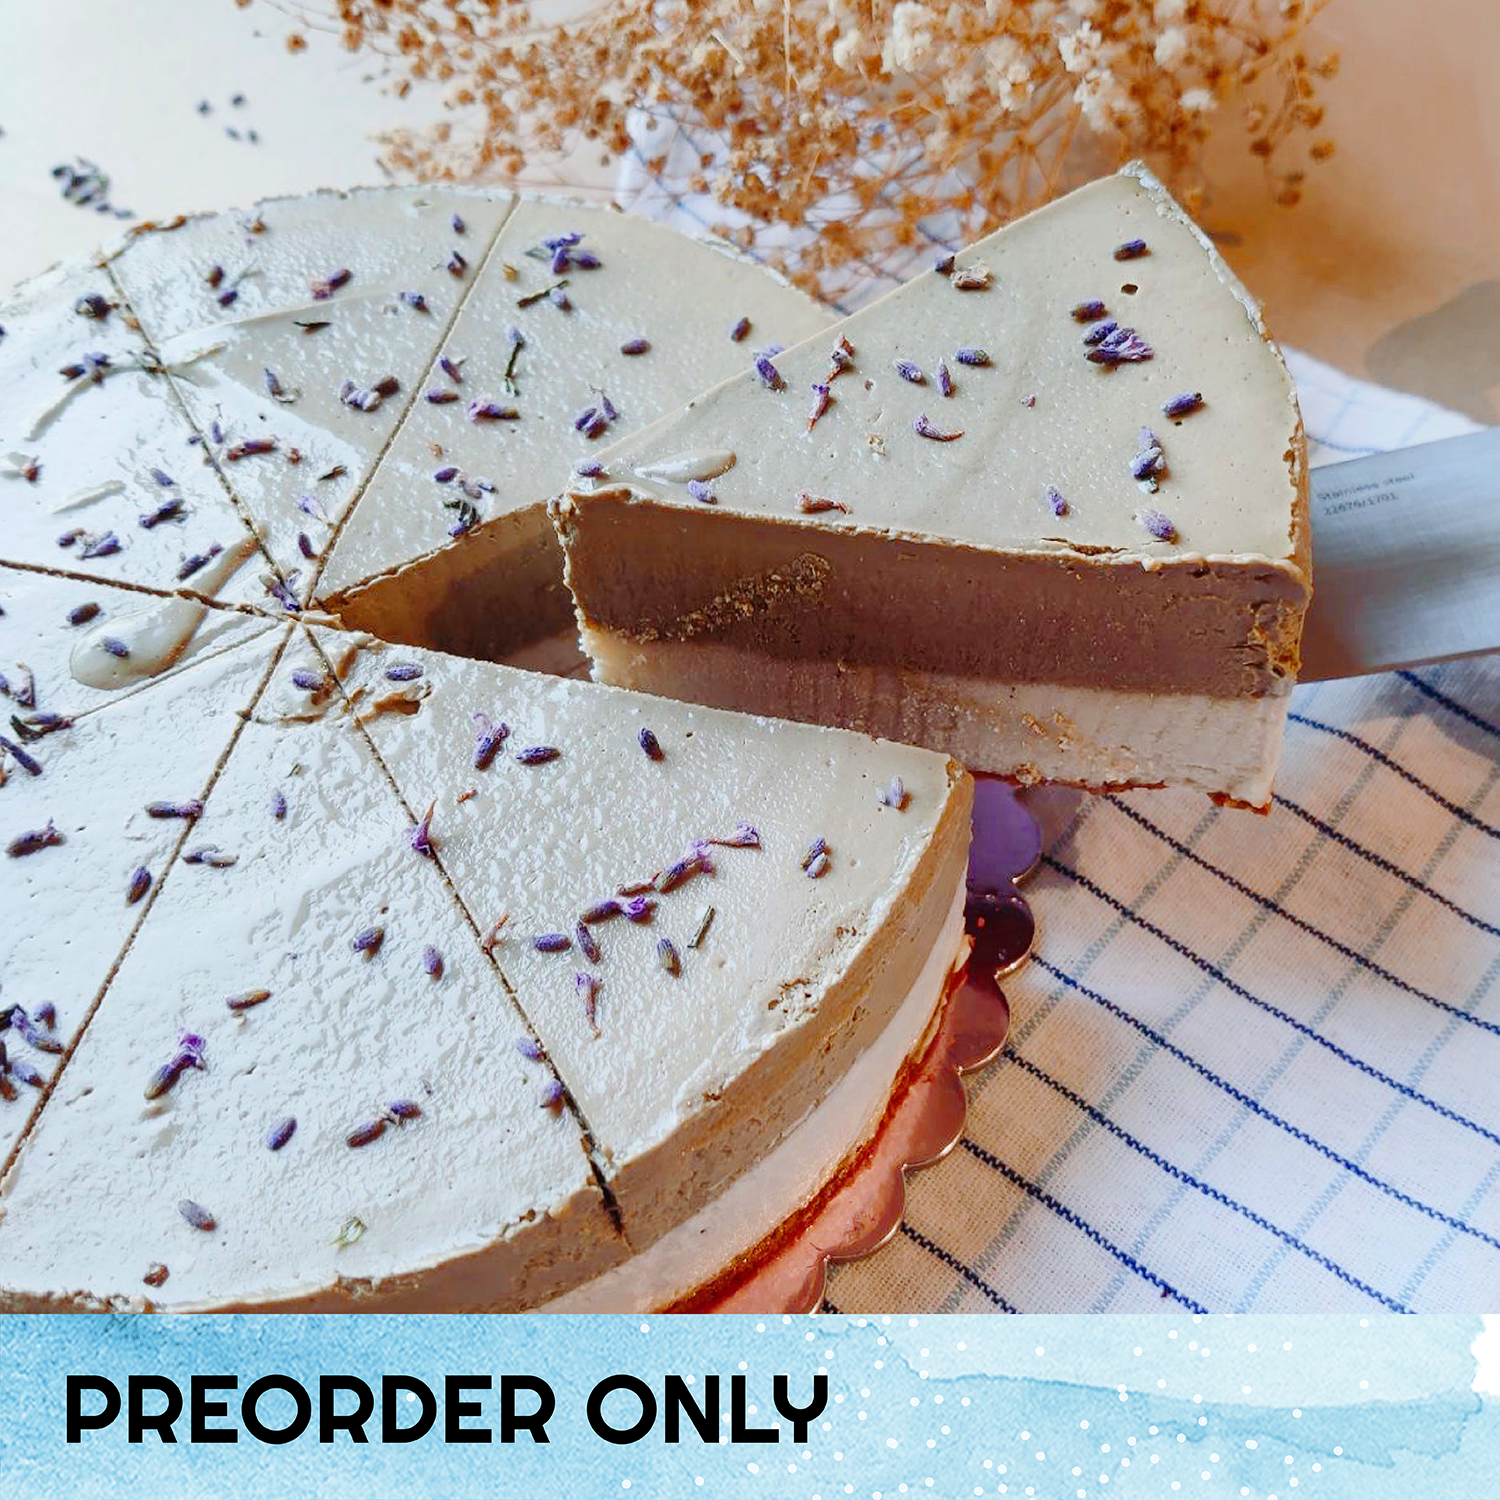 Earl Grey Lavender 'Cheese'cake - 8-inch Whole Cake (Preorder only) (N)